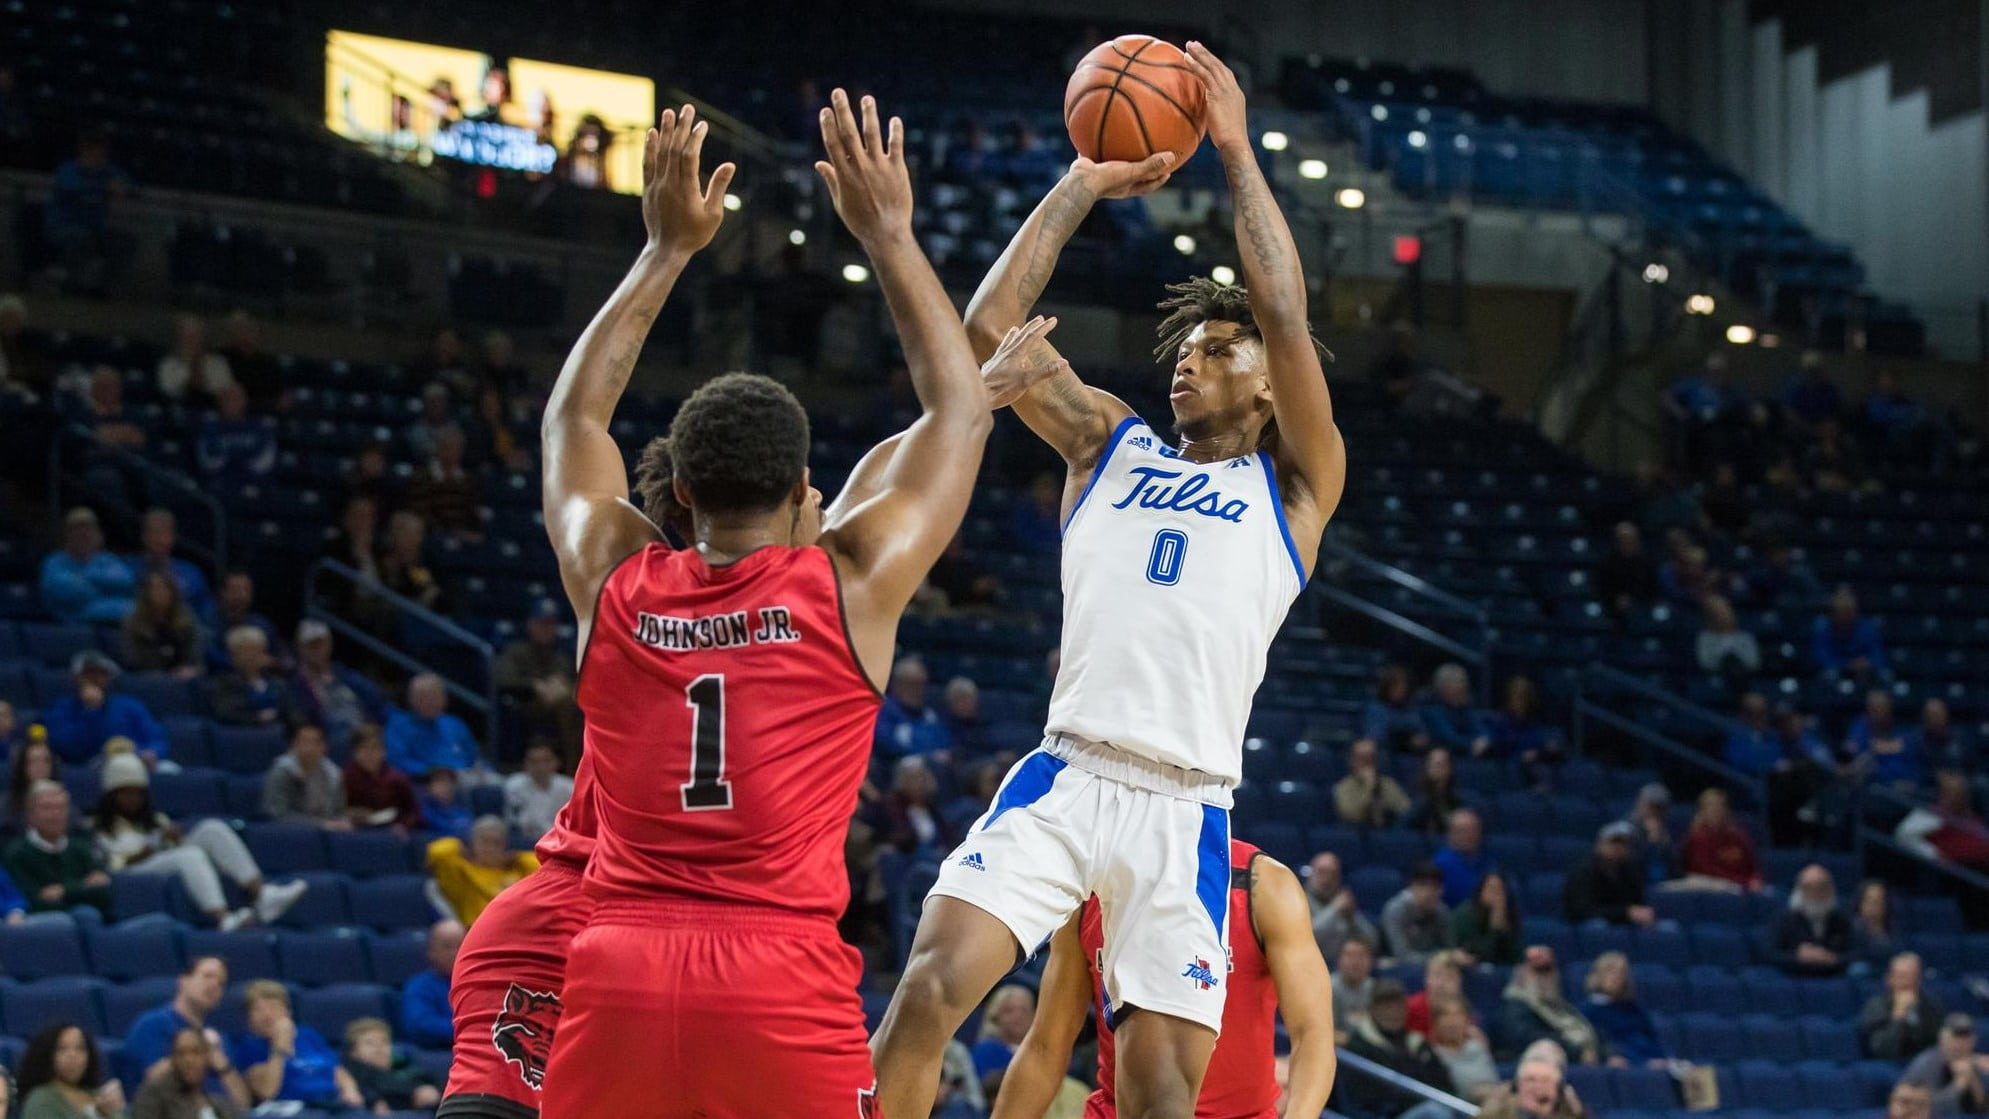 Boise State Broncos at Tulsa Golden Hurricane Free Pick & Preview 12/11/19